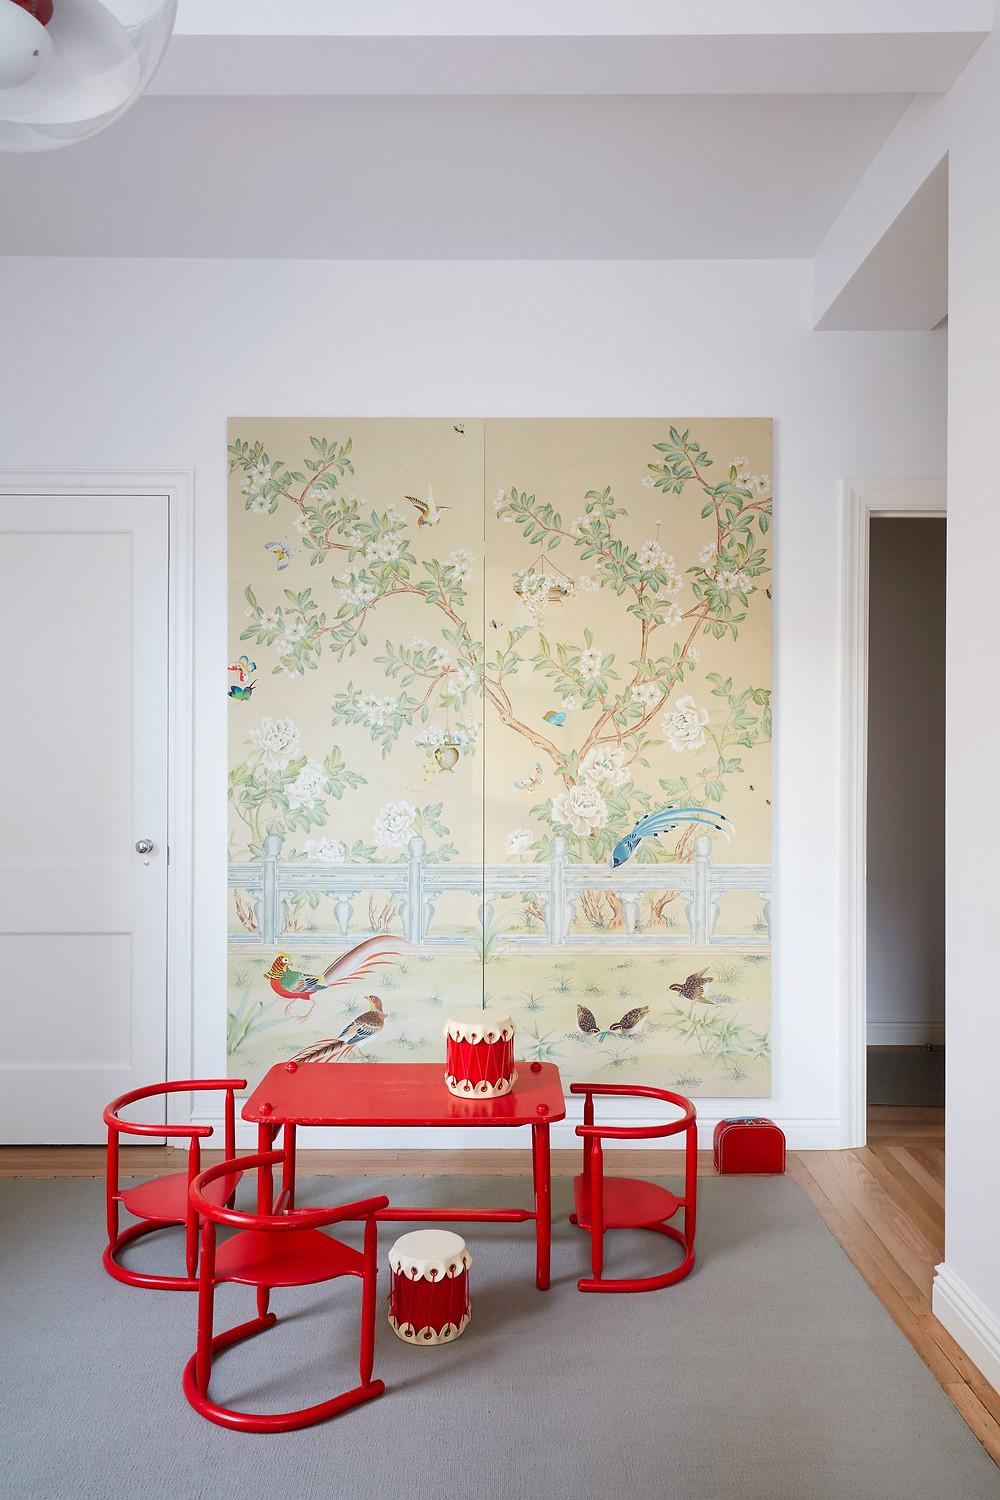 Ikea Playroom Gracie DeGournay Wallpaper Panel Red High Gloss